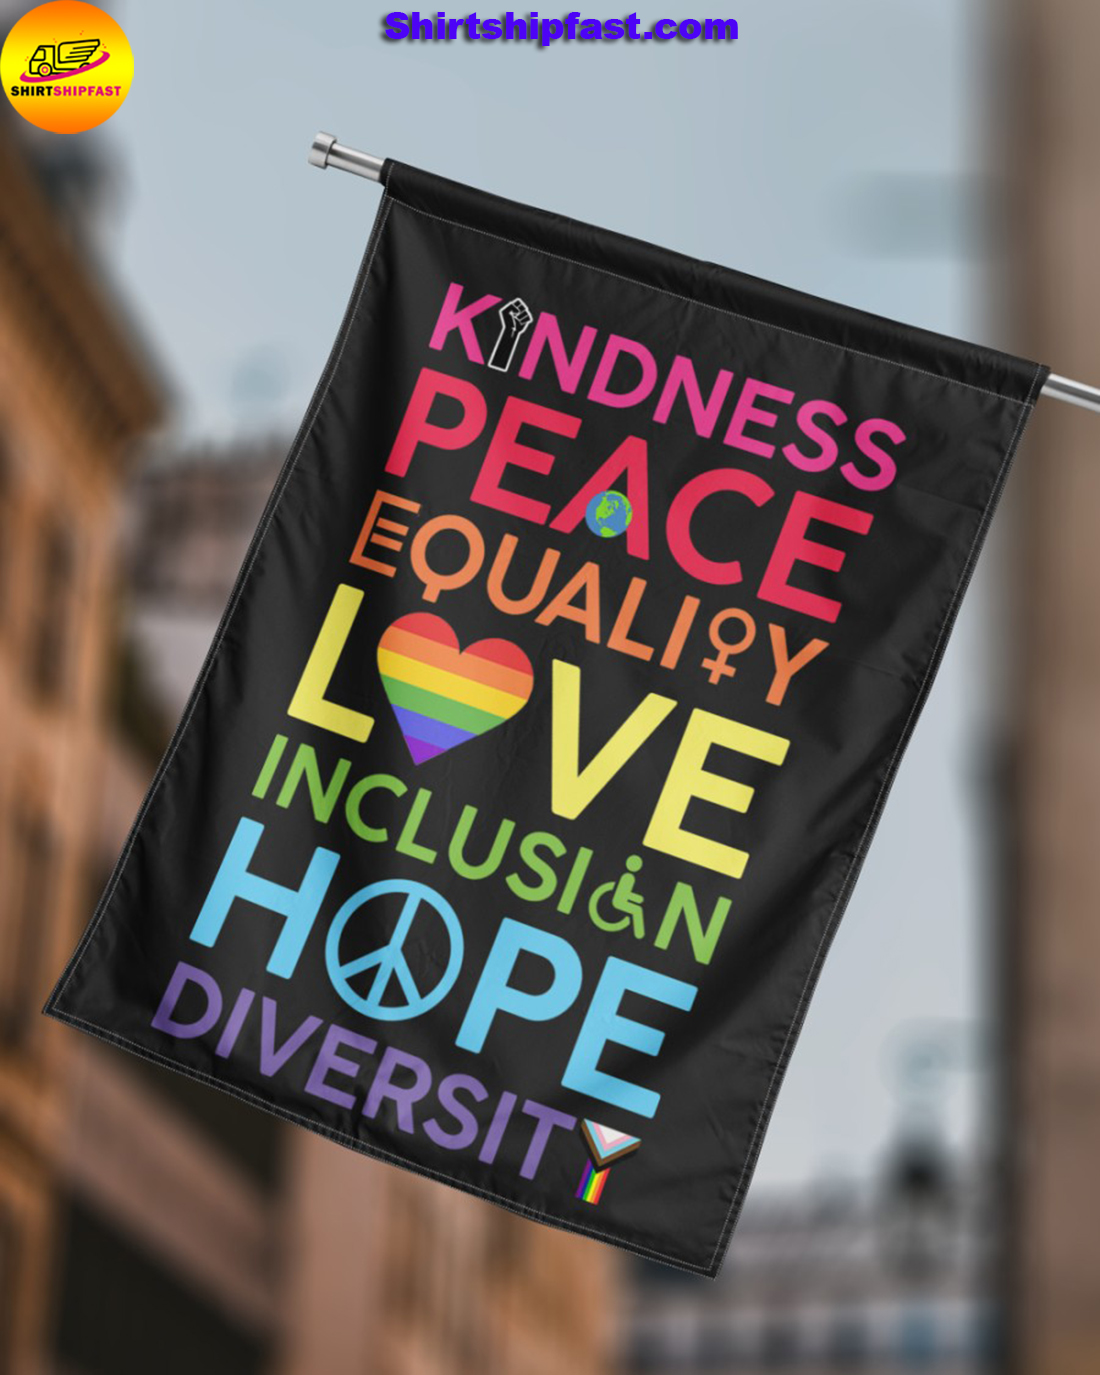 LGBT Kindness peace equality love inclusion hope diversity symbol flag